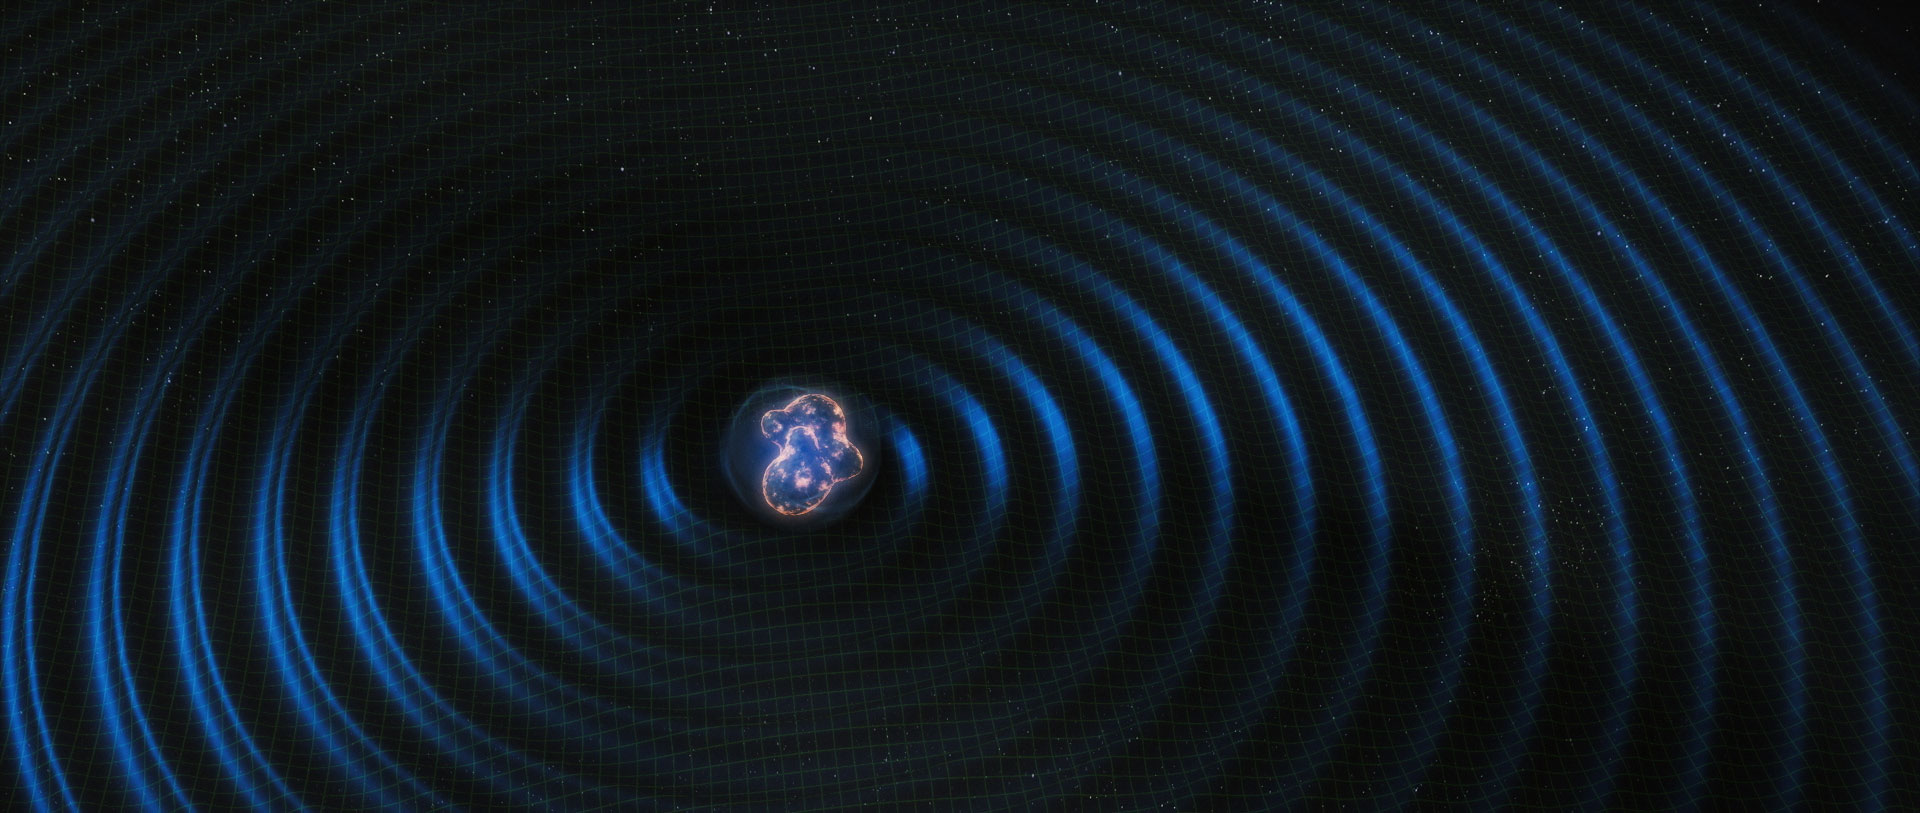 Artist's rendering of merging neutron stars.